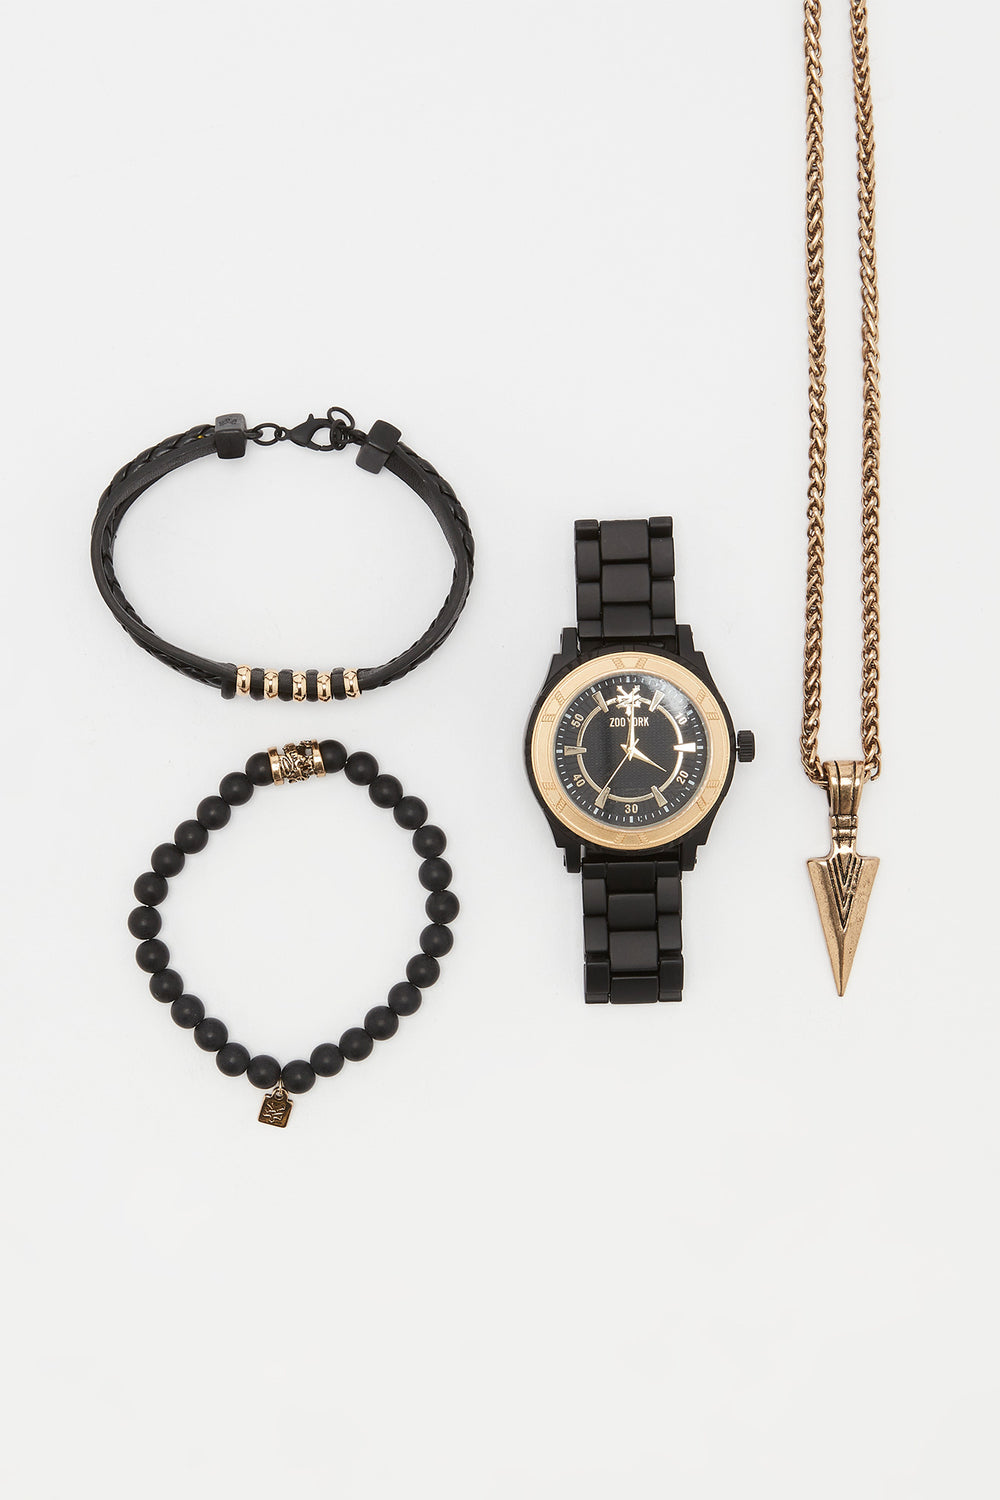 Zoo York Mens Matte Black and Gold Tone Watch Black